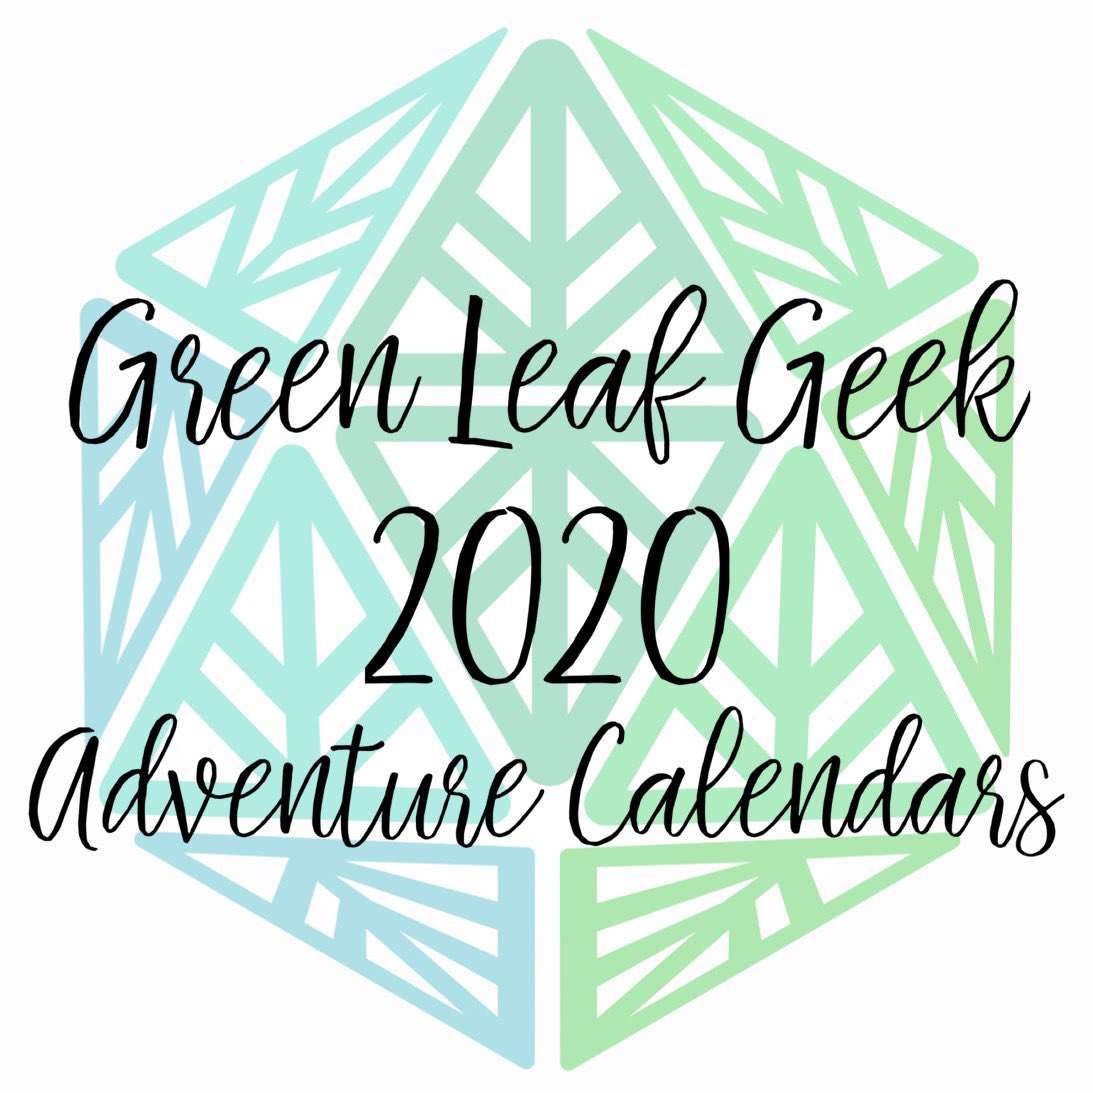 Psssst... there are still some #AdventureCalendars left for order! They ship 1st week of Oct so snag yours now! All info at the link in my profile.  Maybe share with a friend who might want one? 🥰 Feat a one-shot by @honeyanddice & art by @Mjenai_art & @RoseandSpice!  #TTRPG https://t.co/tshpesaKUA